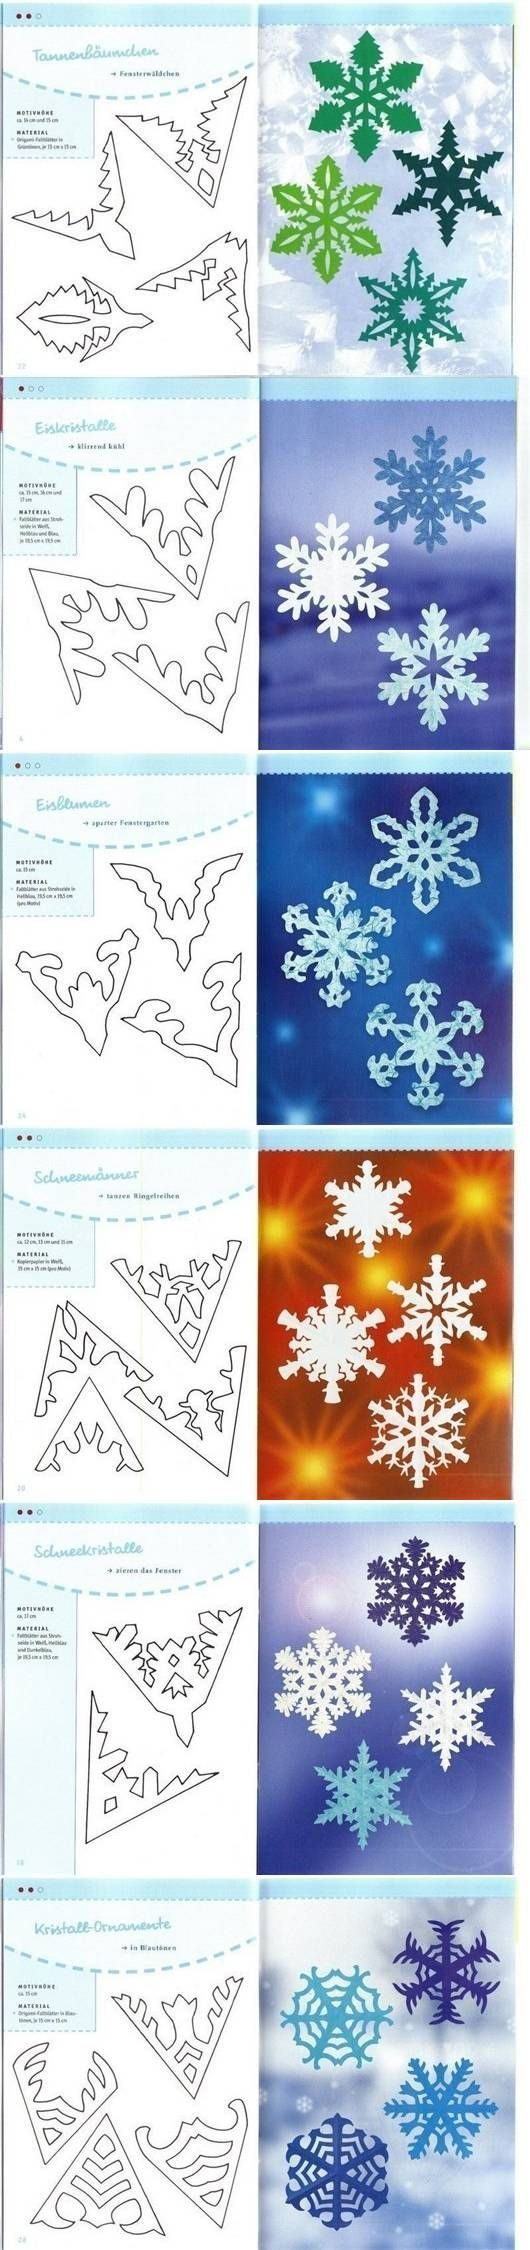 DIY Paper Schemes Snowflakes DIY Projects | UsefulDIY.com